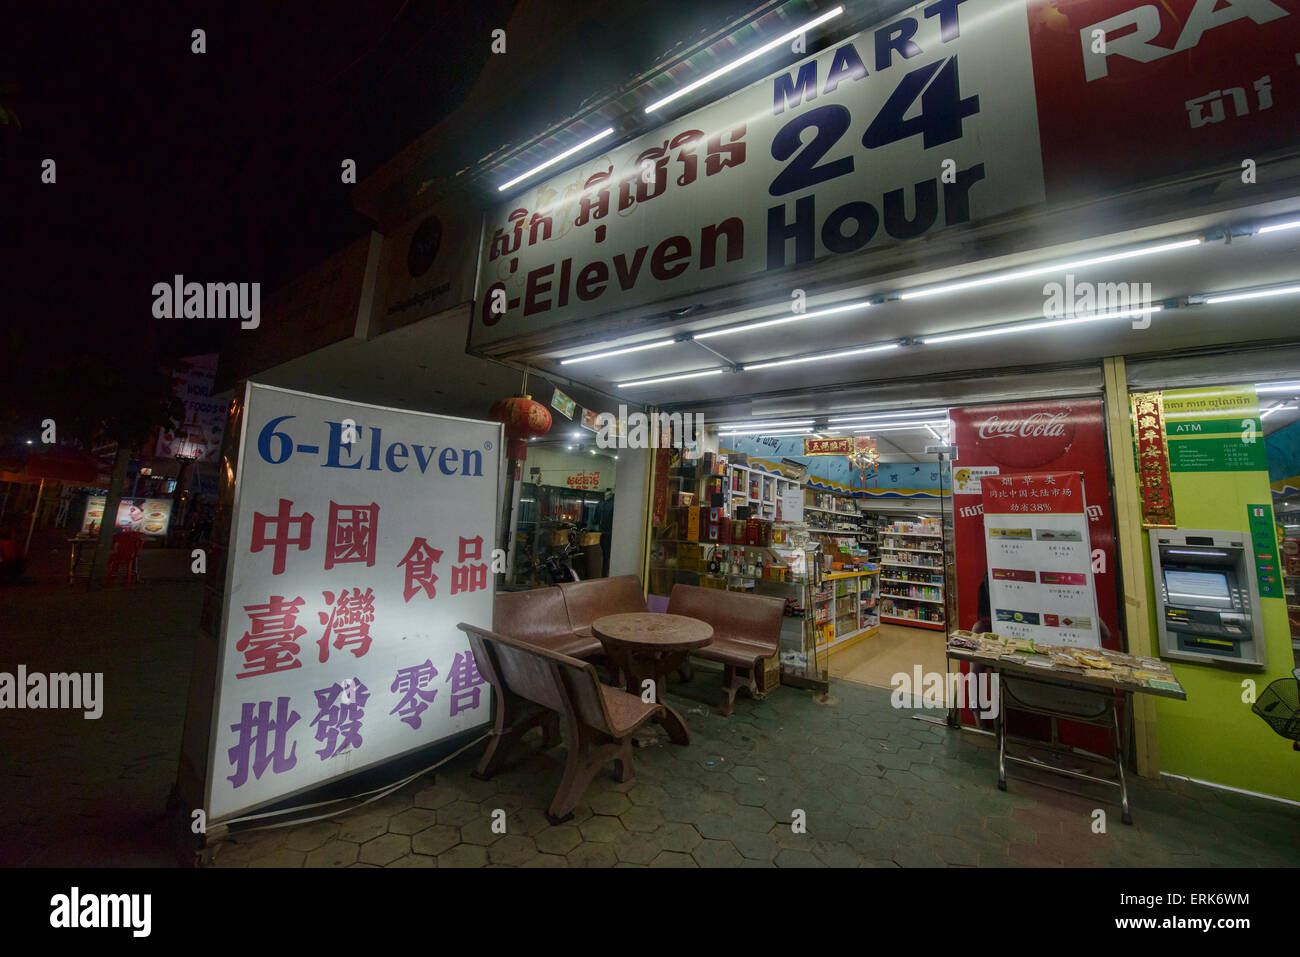 Not 7-11 but 6-11 in Siem Reap, Cambodia Stock Photo